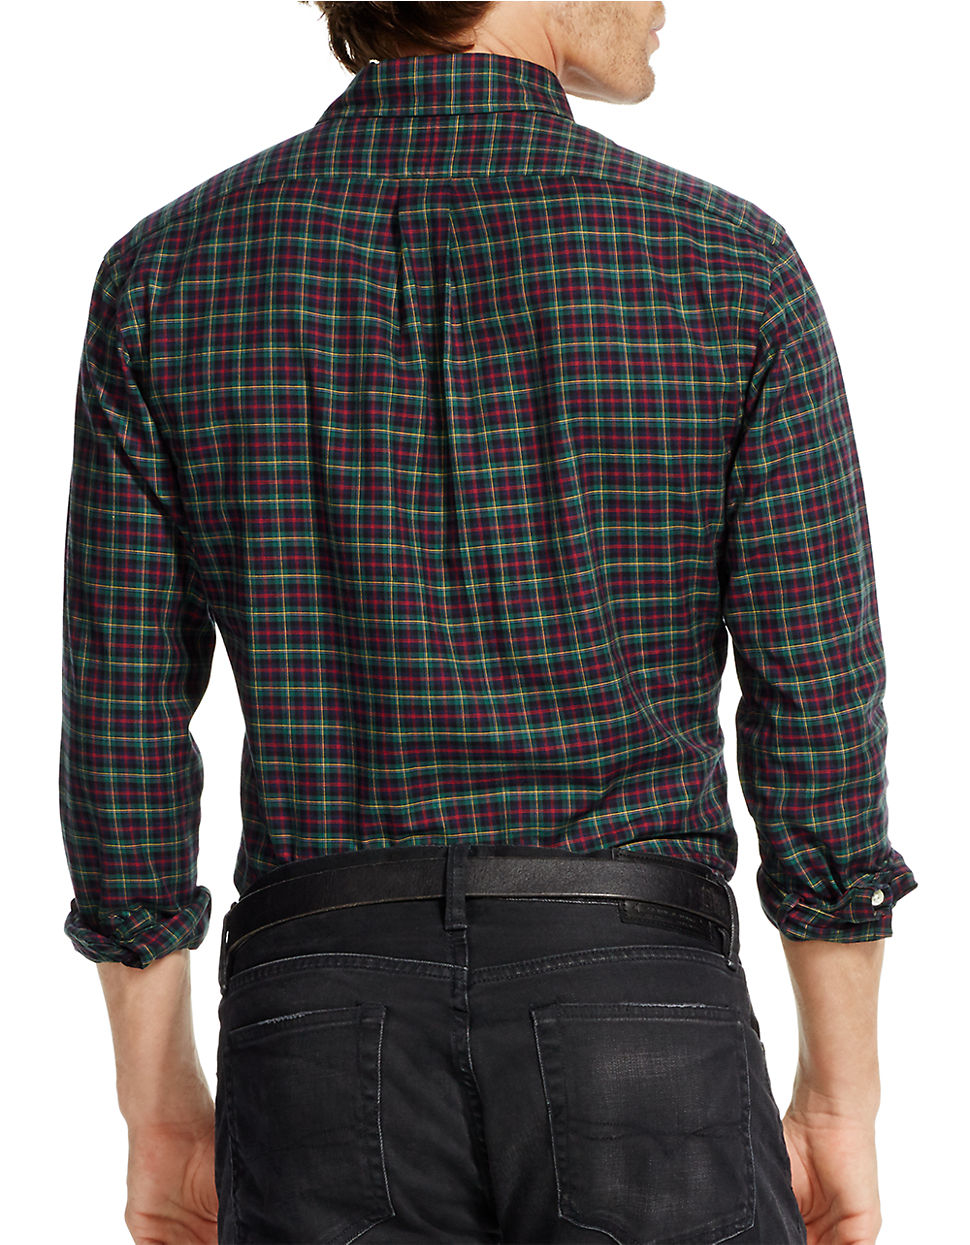 polo ralph lauren slim fit checked twill shirt in green for men lyst. Black Bedroom Furniture Sets. Home Design Ideas